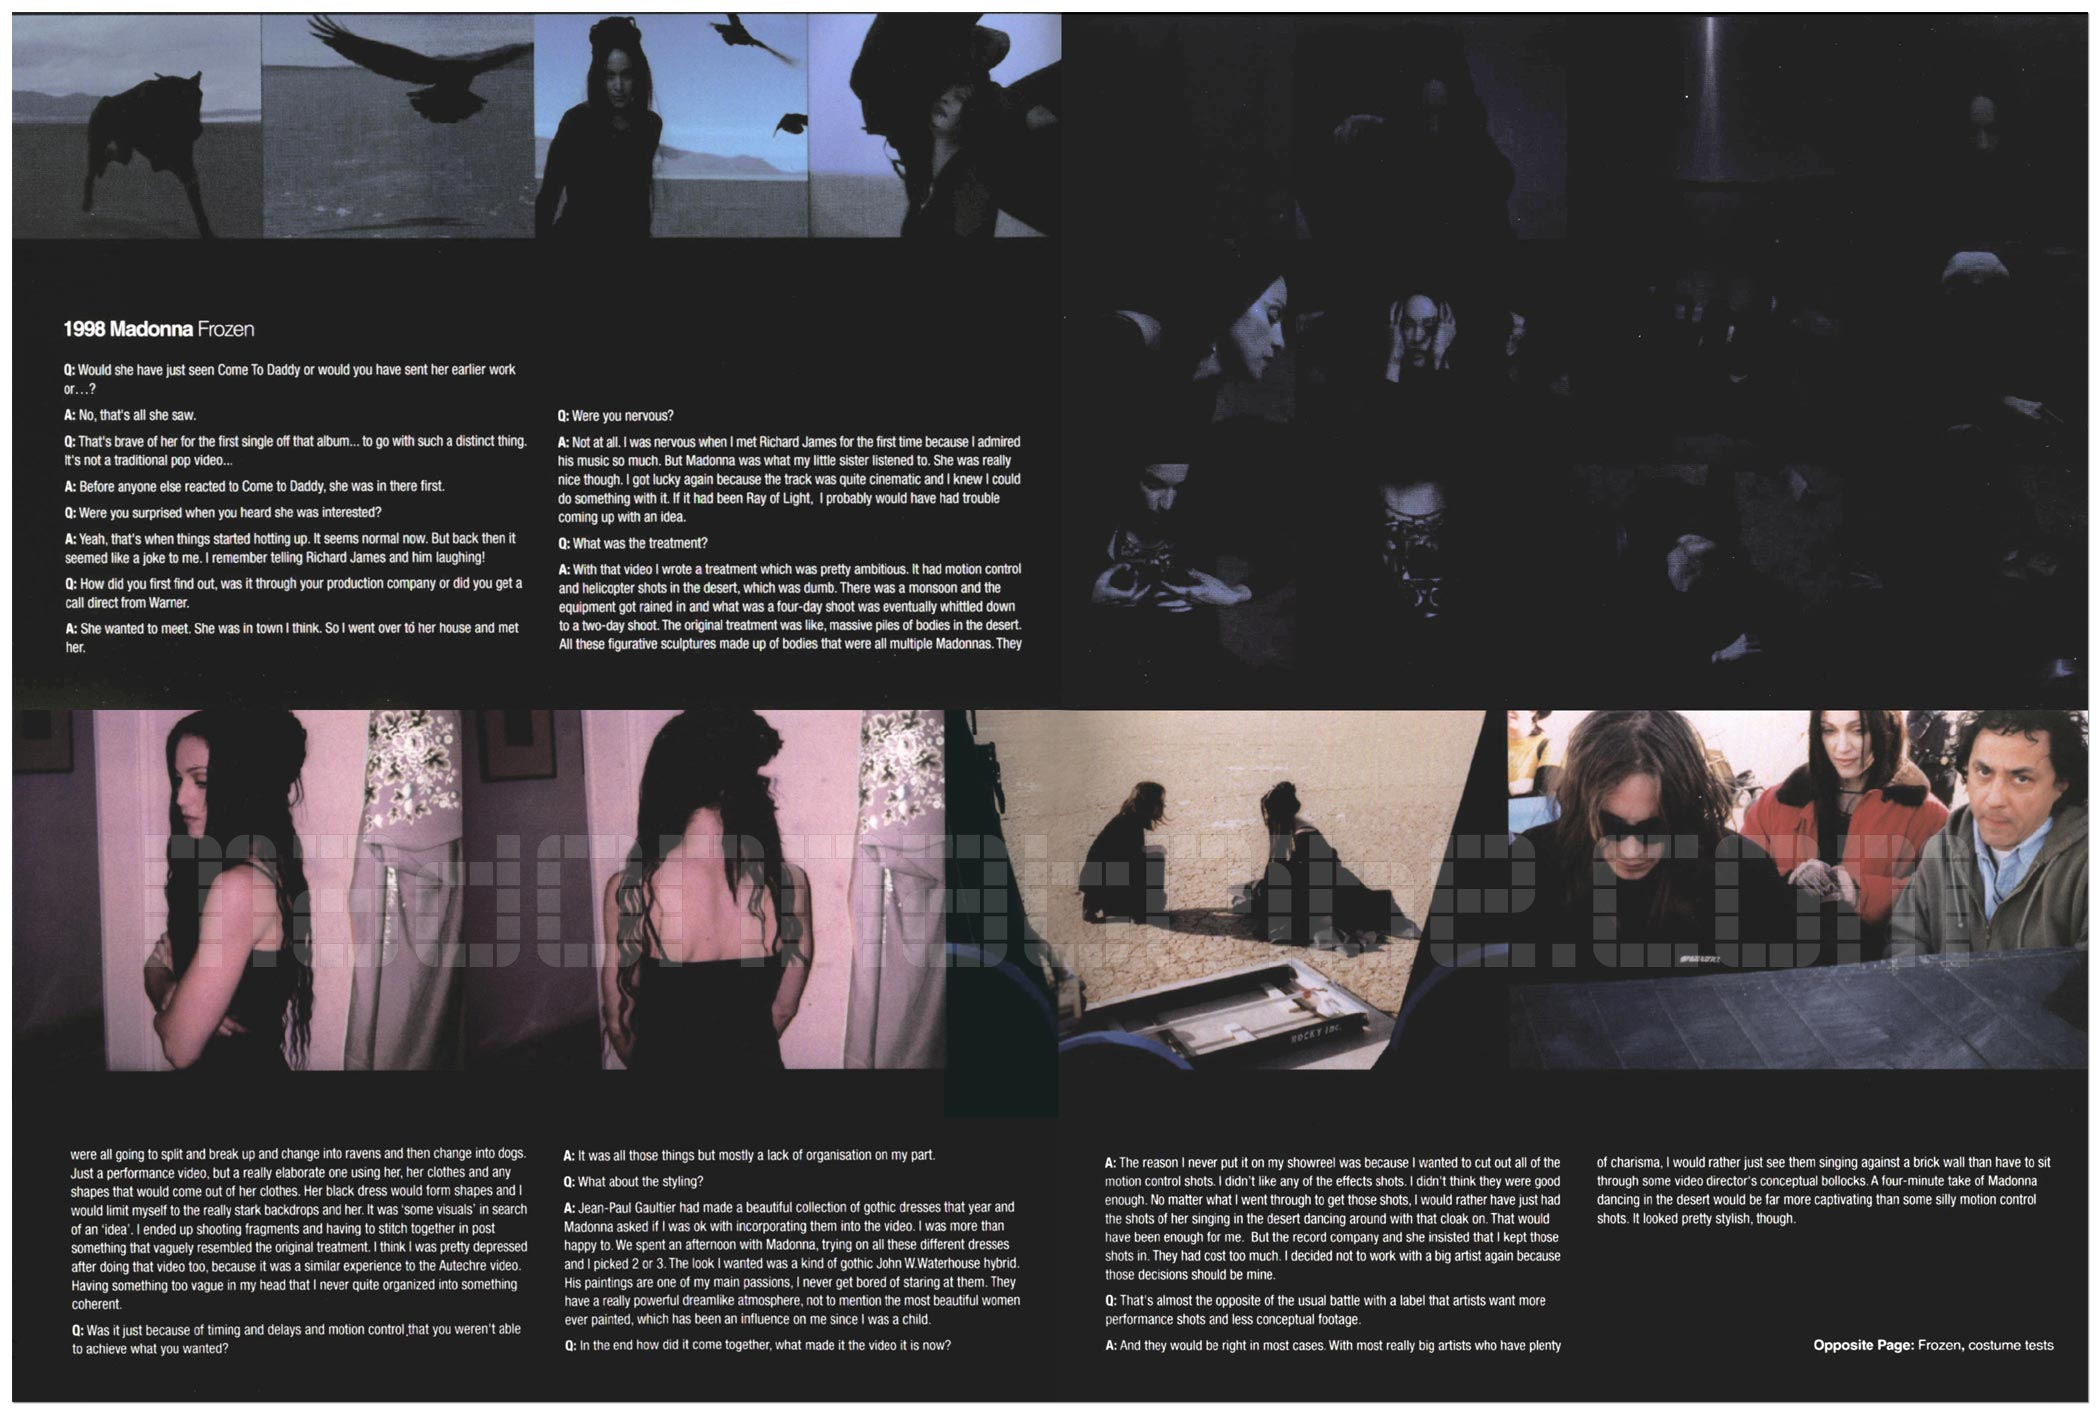 Chris Cunningham On The Making Of Frozen Madonnatribe Decade